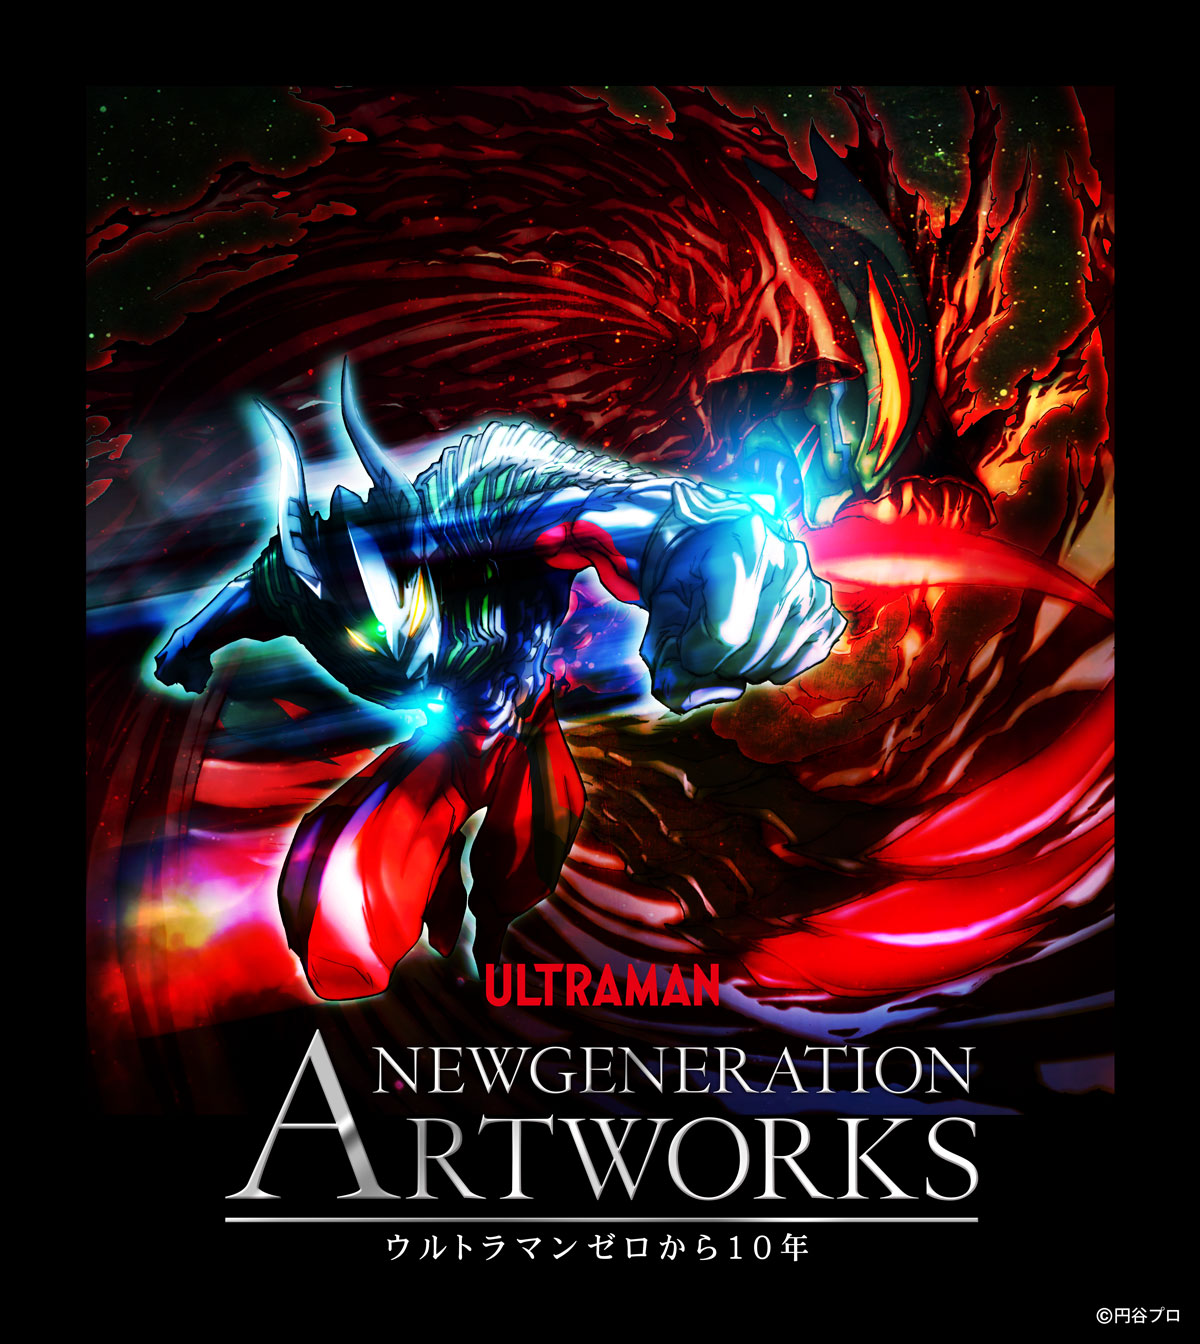 NEWGENERATION ARTWORKS